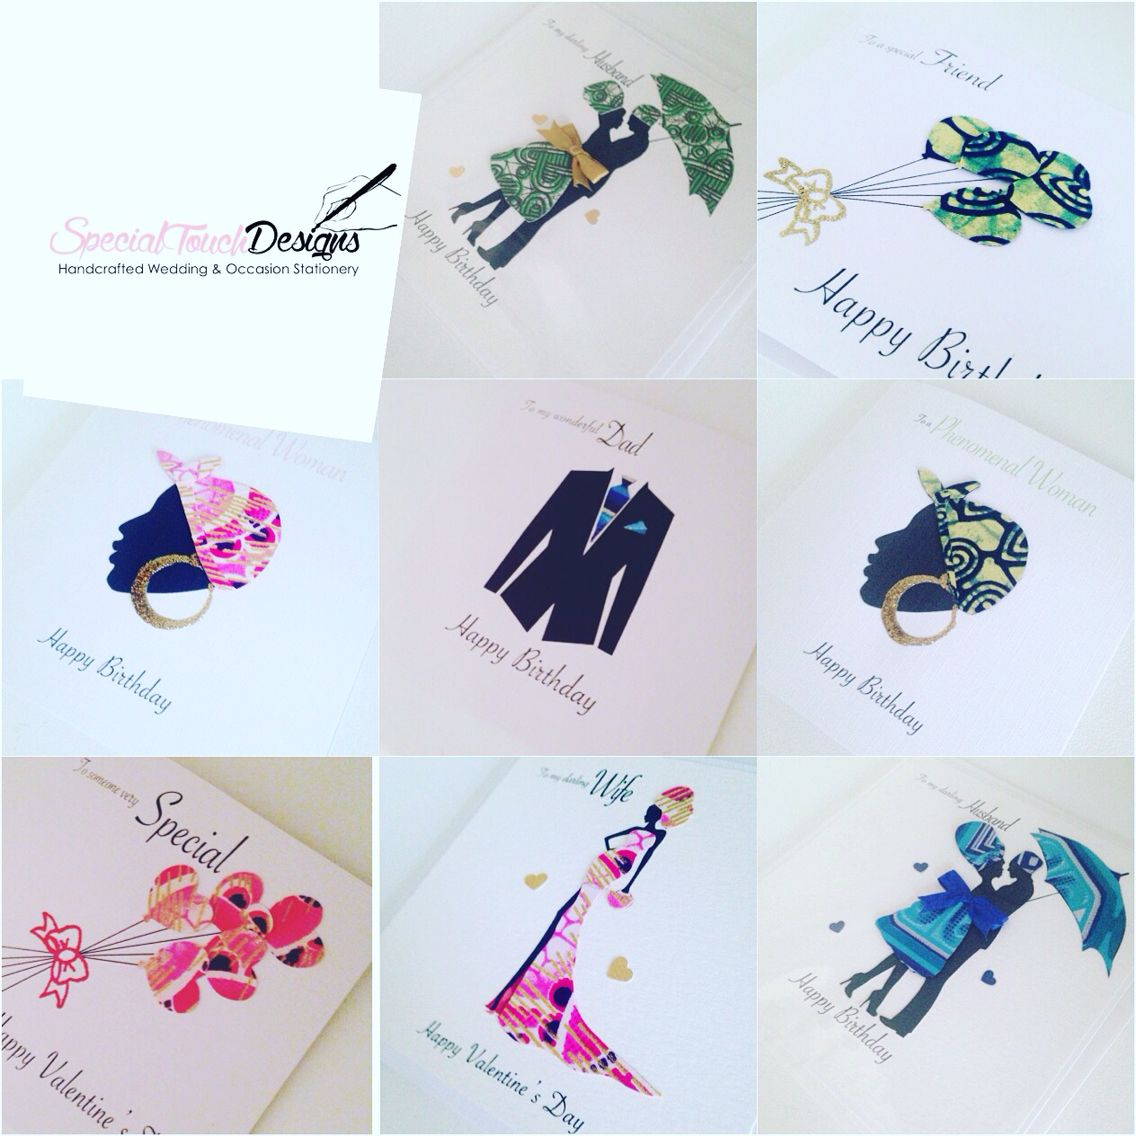 Spring 2016 Collection Spread The Word Special Touch Designs Https